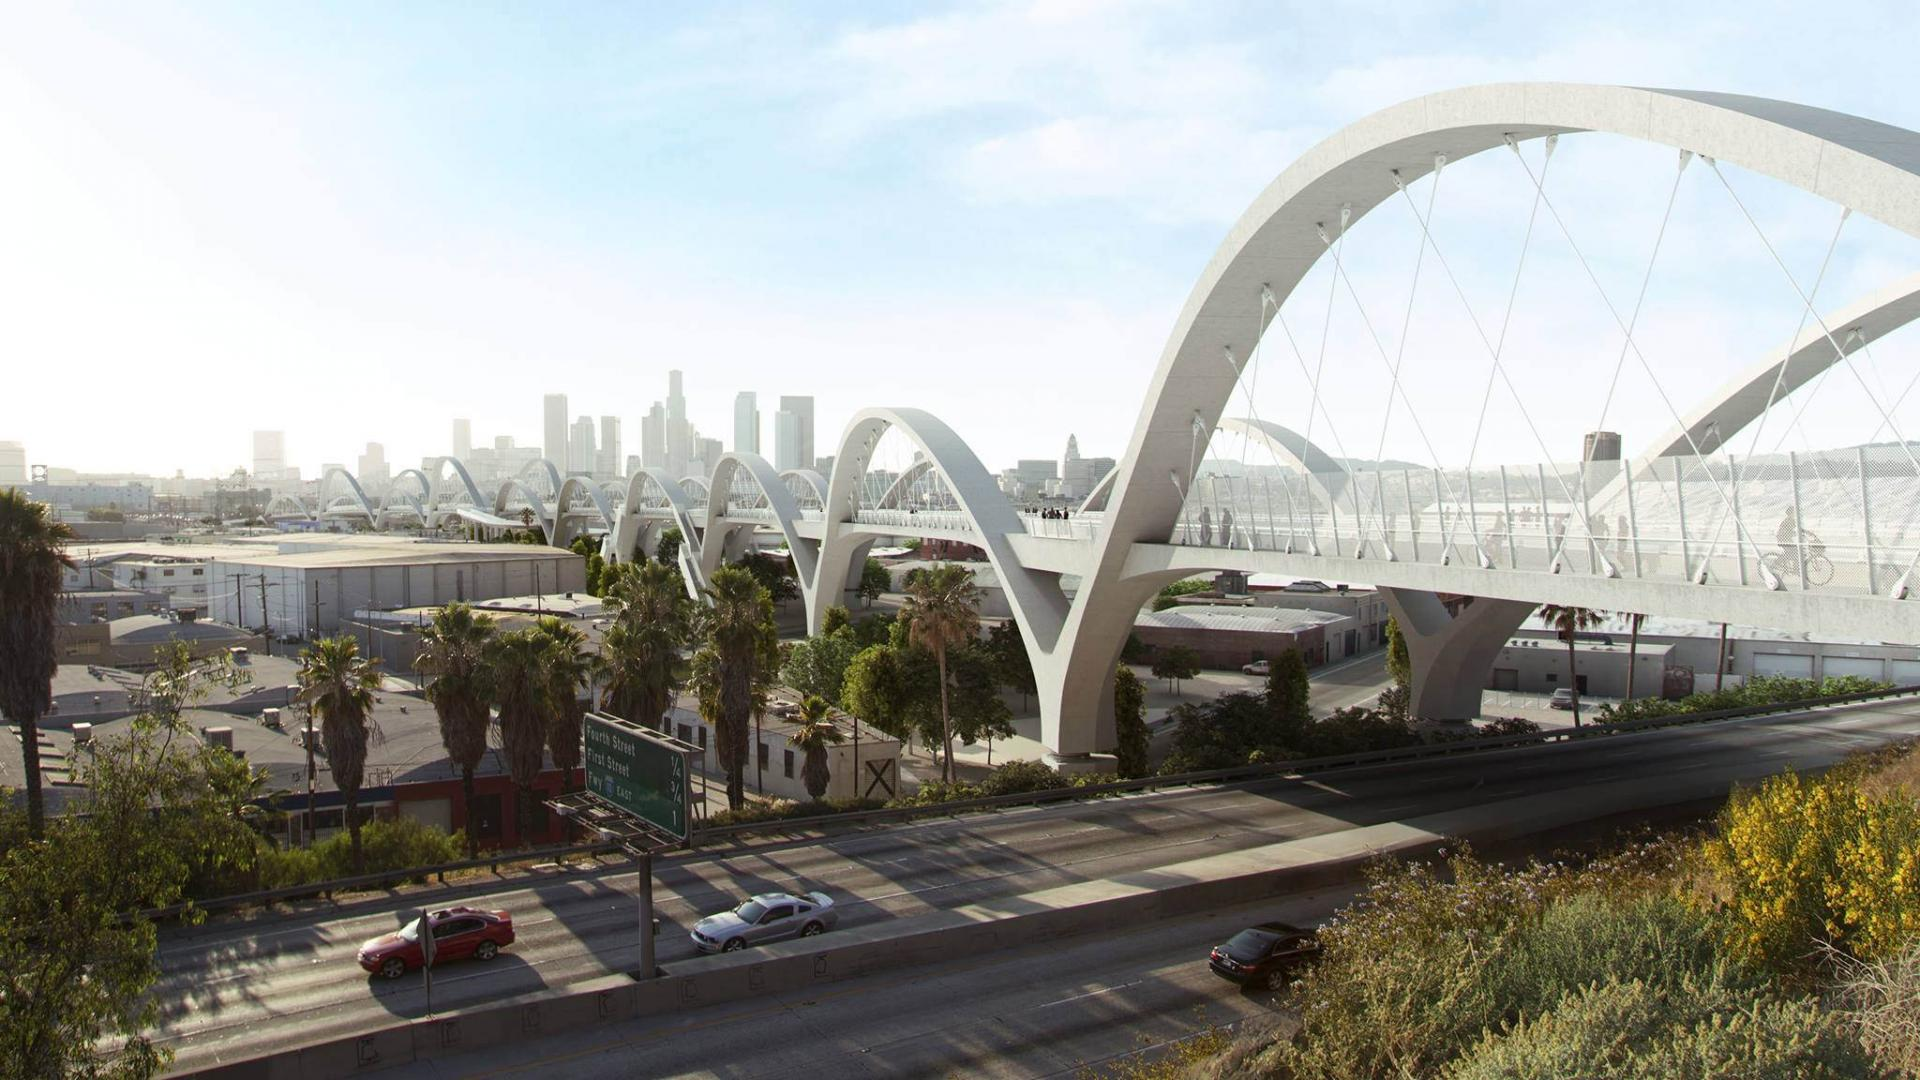 rendering of the new sixth street viaduct